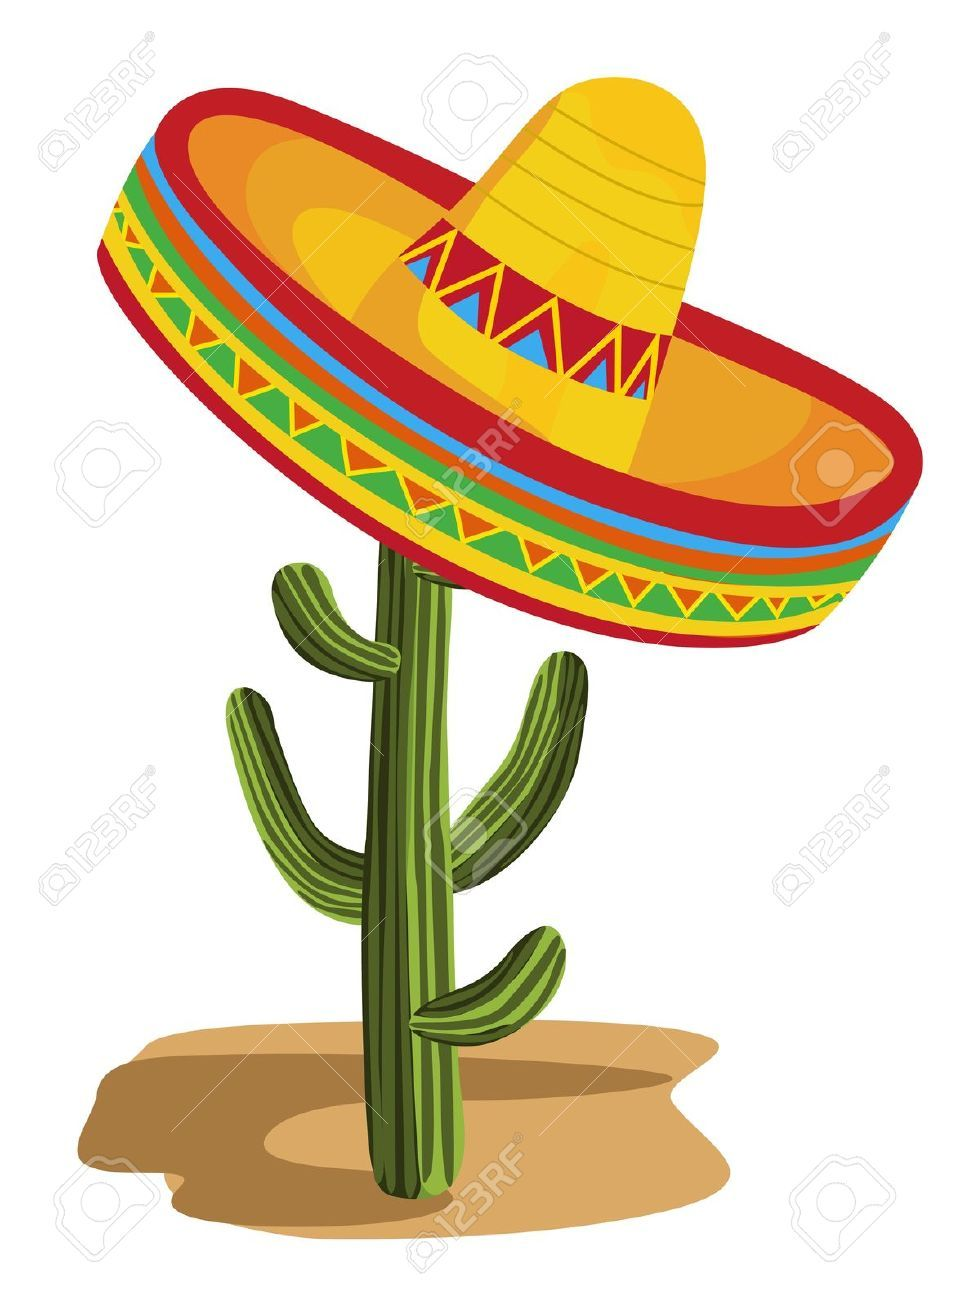 Mexican Sombrero Images Stock Pictures Royalty Free Mexican Sombrero Photos And Stock Photography Sombrero Mexican Paintings Mexican